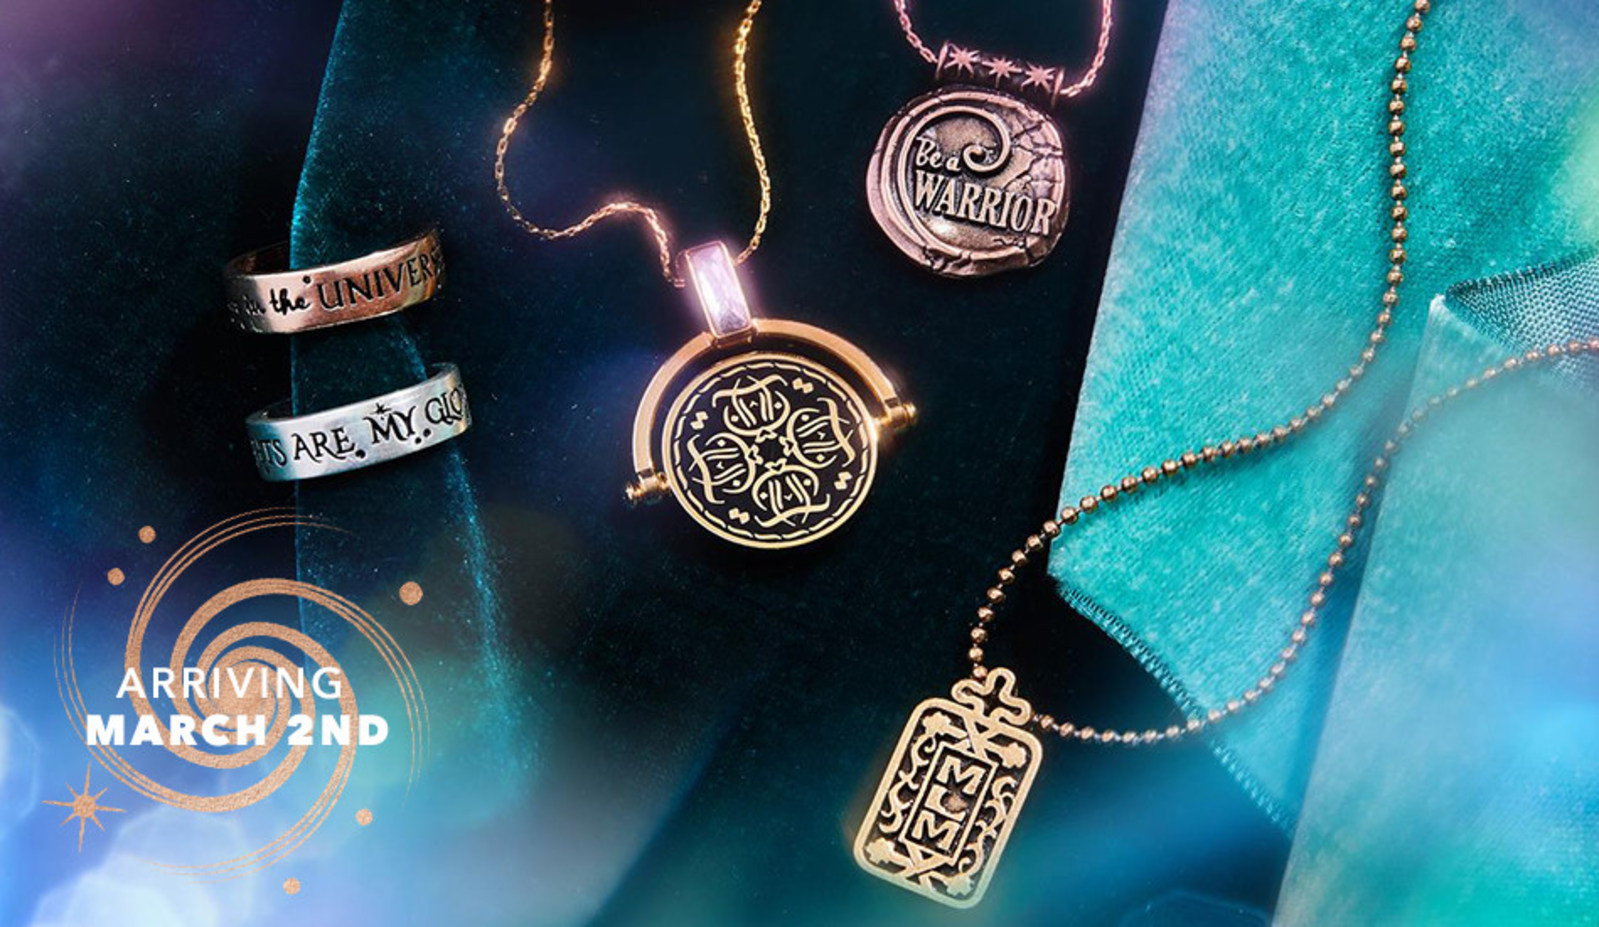 Introducing Disney's A Wrinkle In Time Collection by ALEX AND ANI